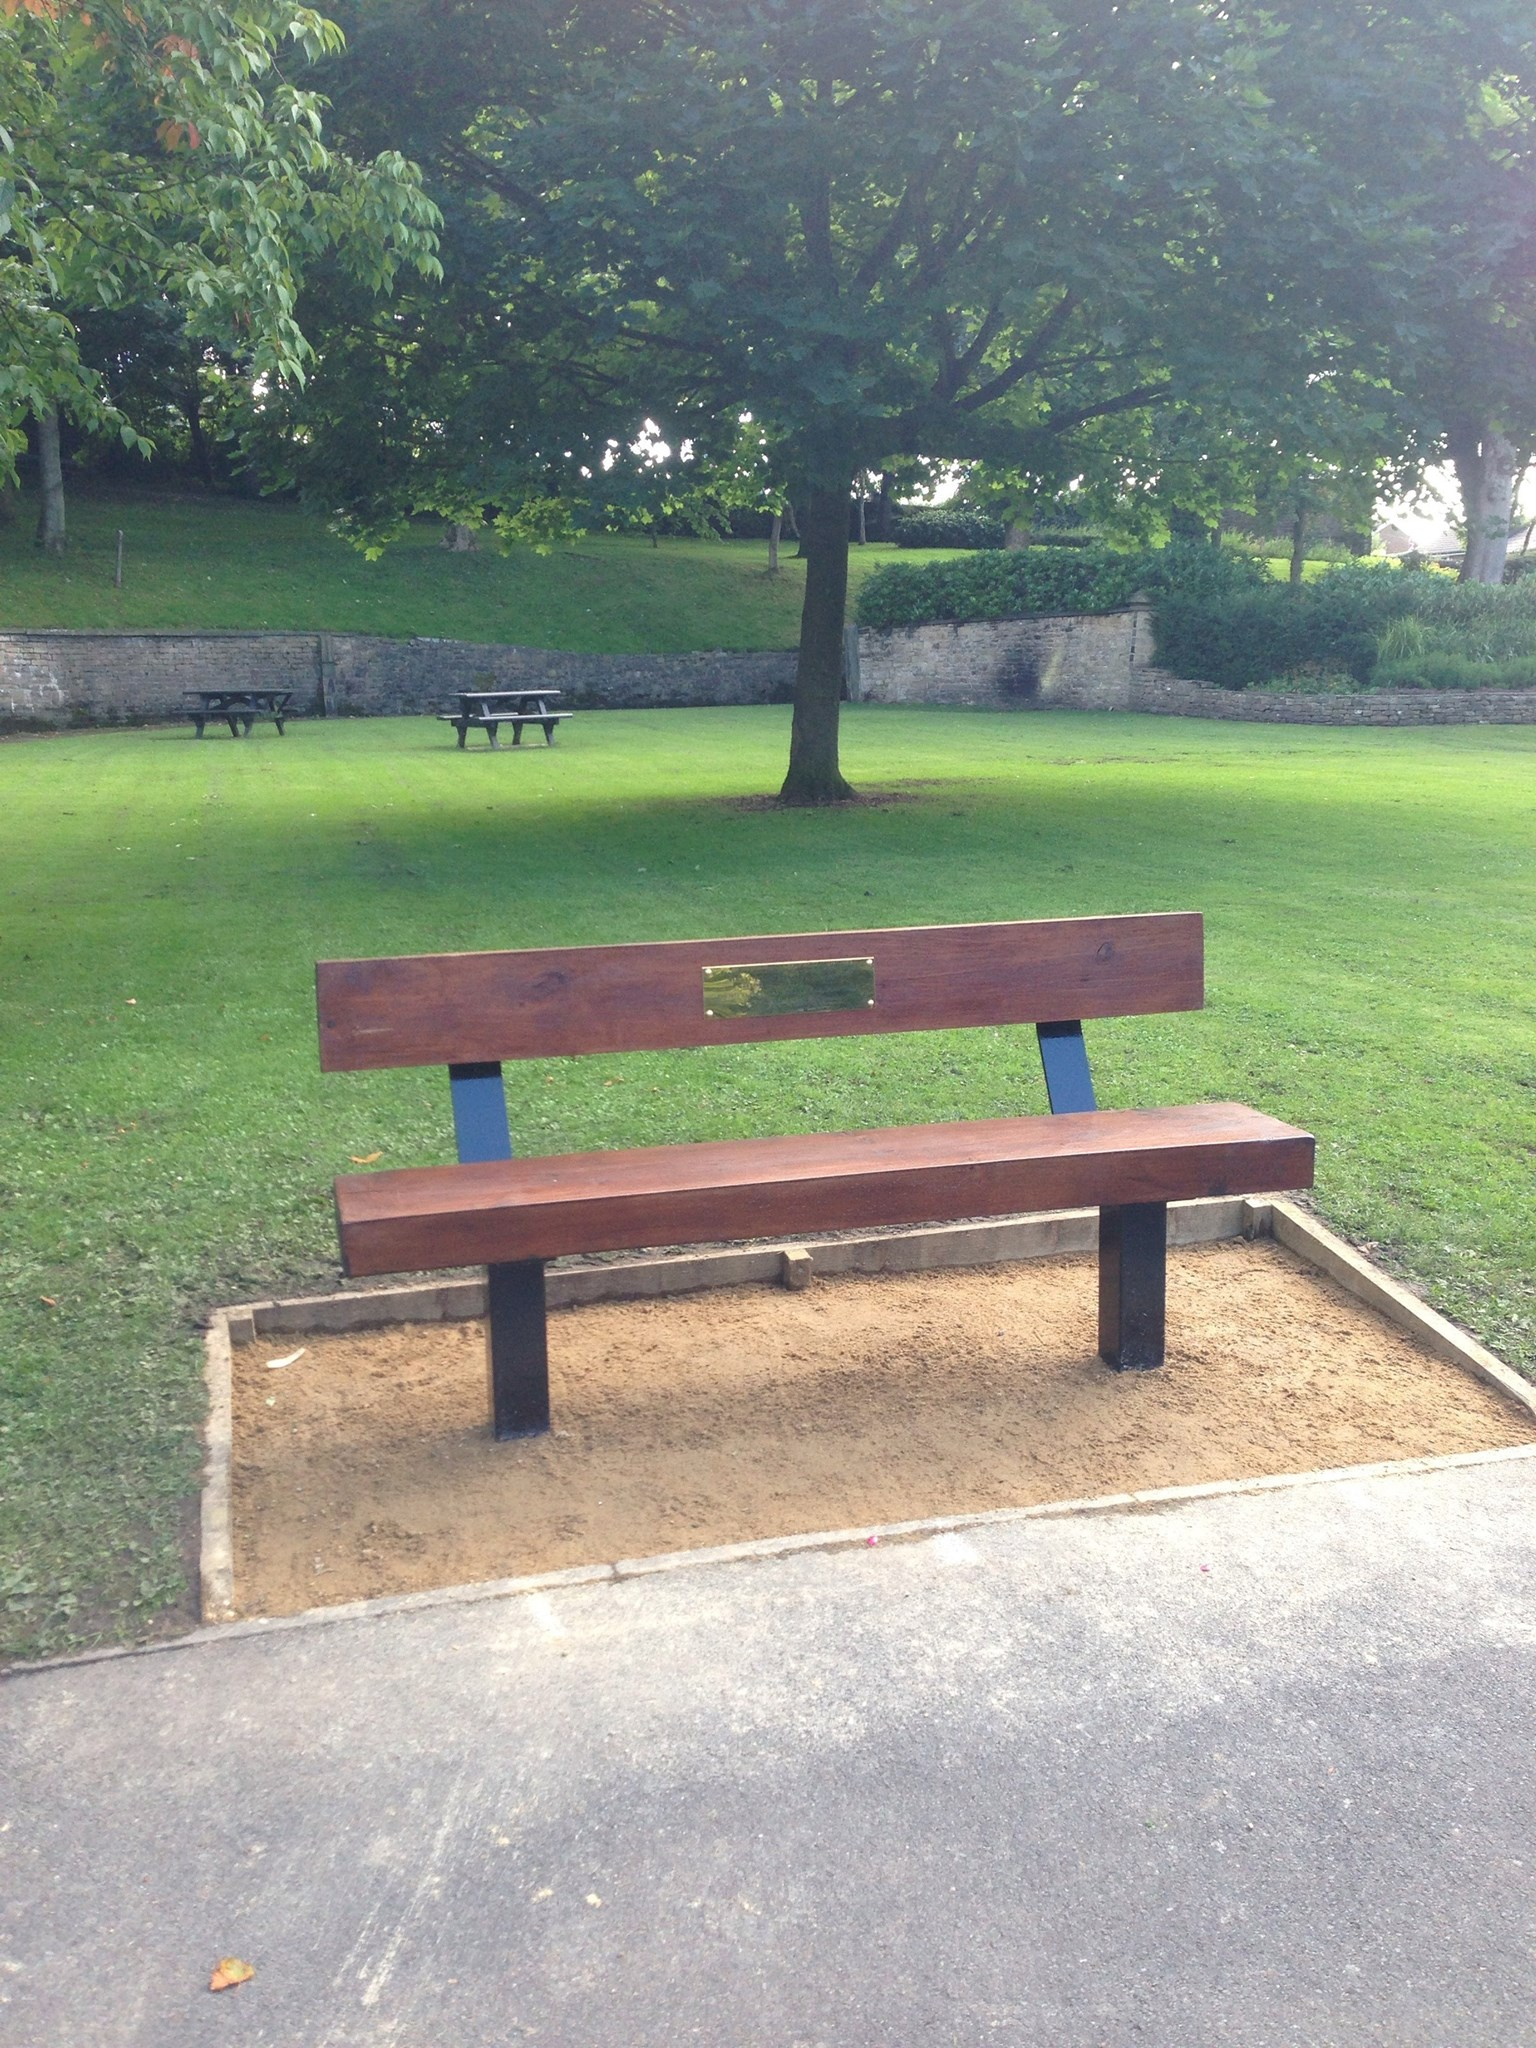 The bench